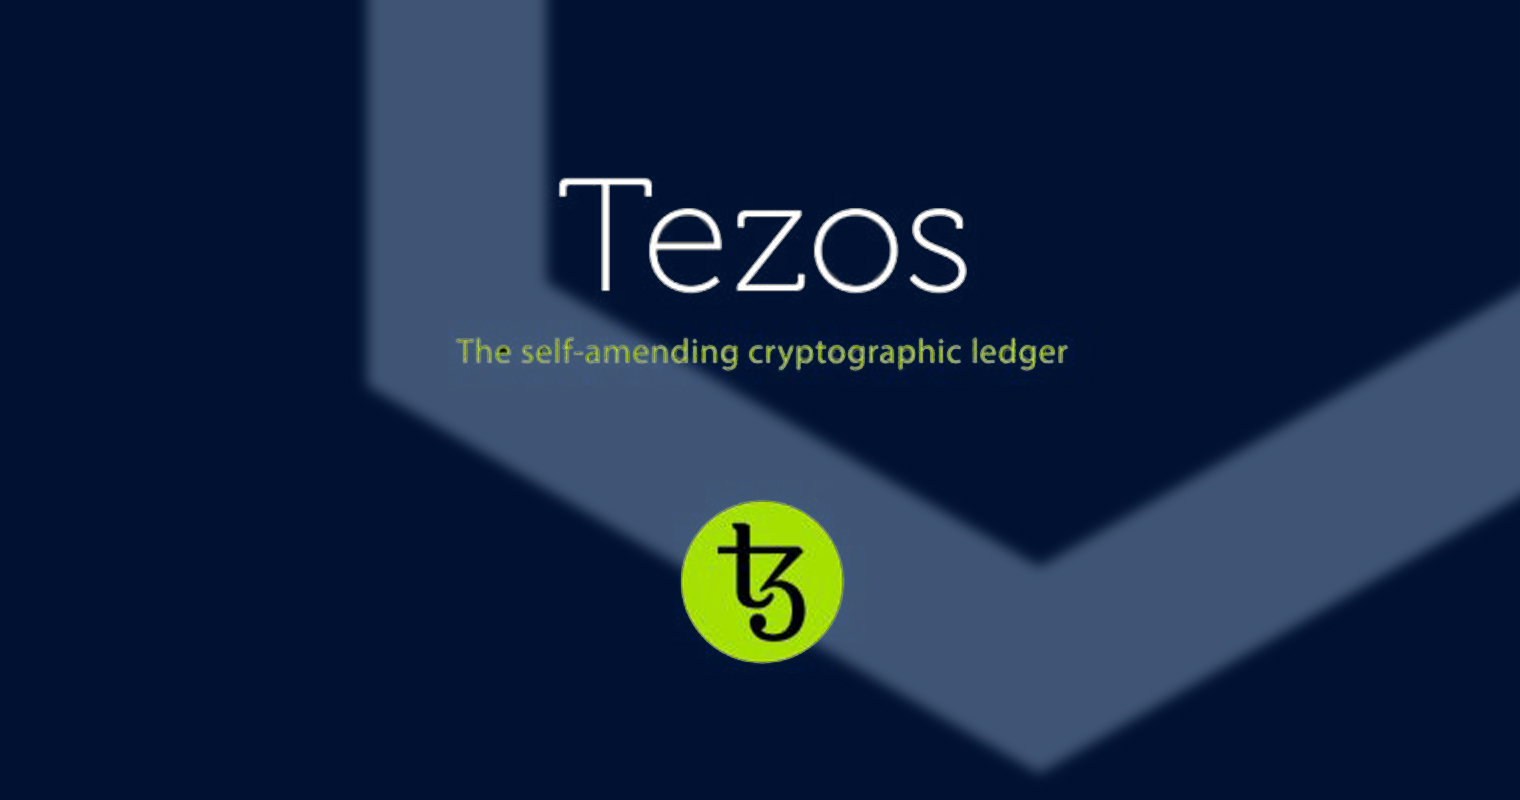 Tezos password, no recovery possible